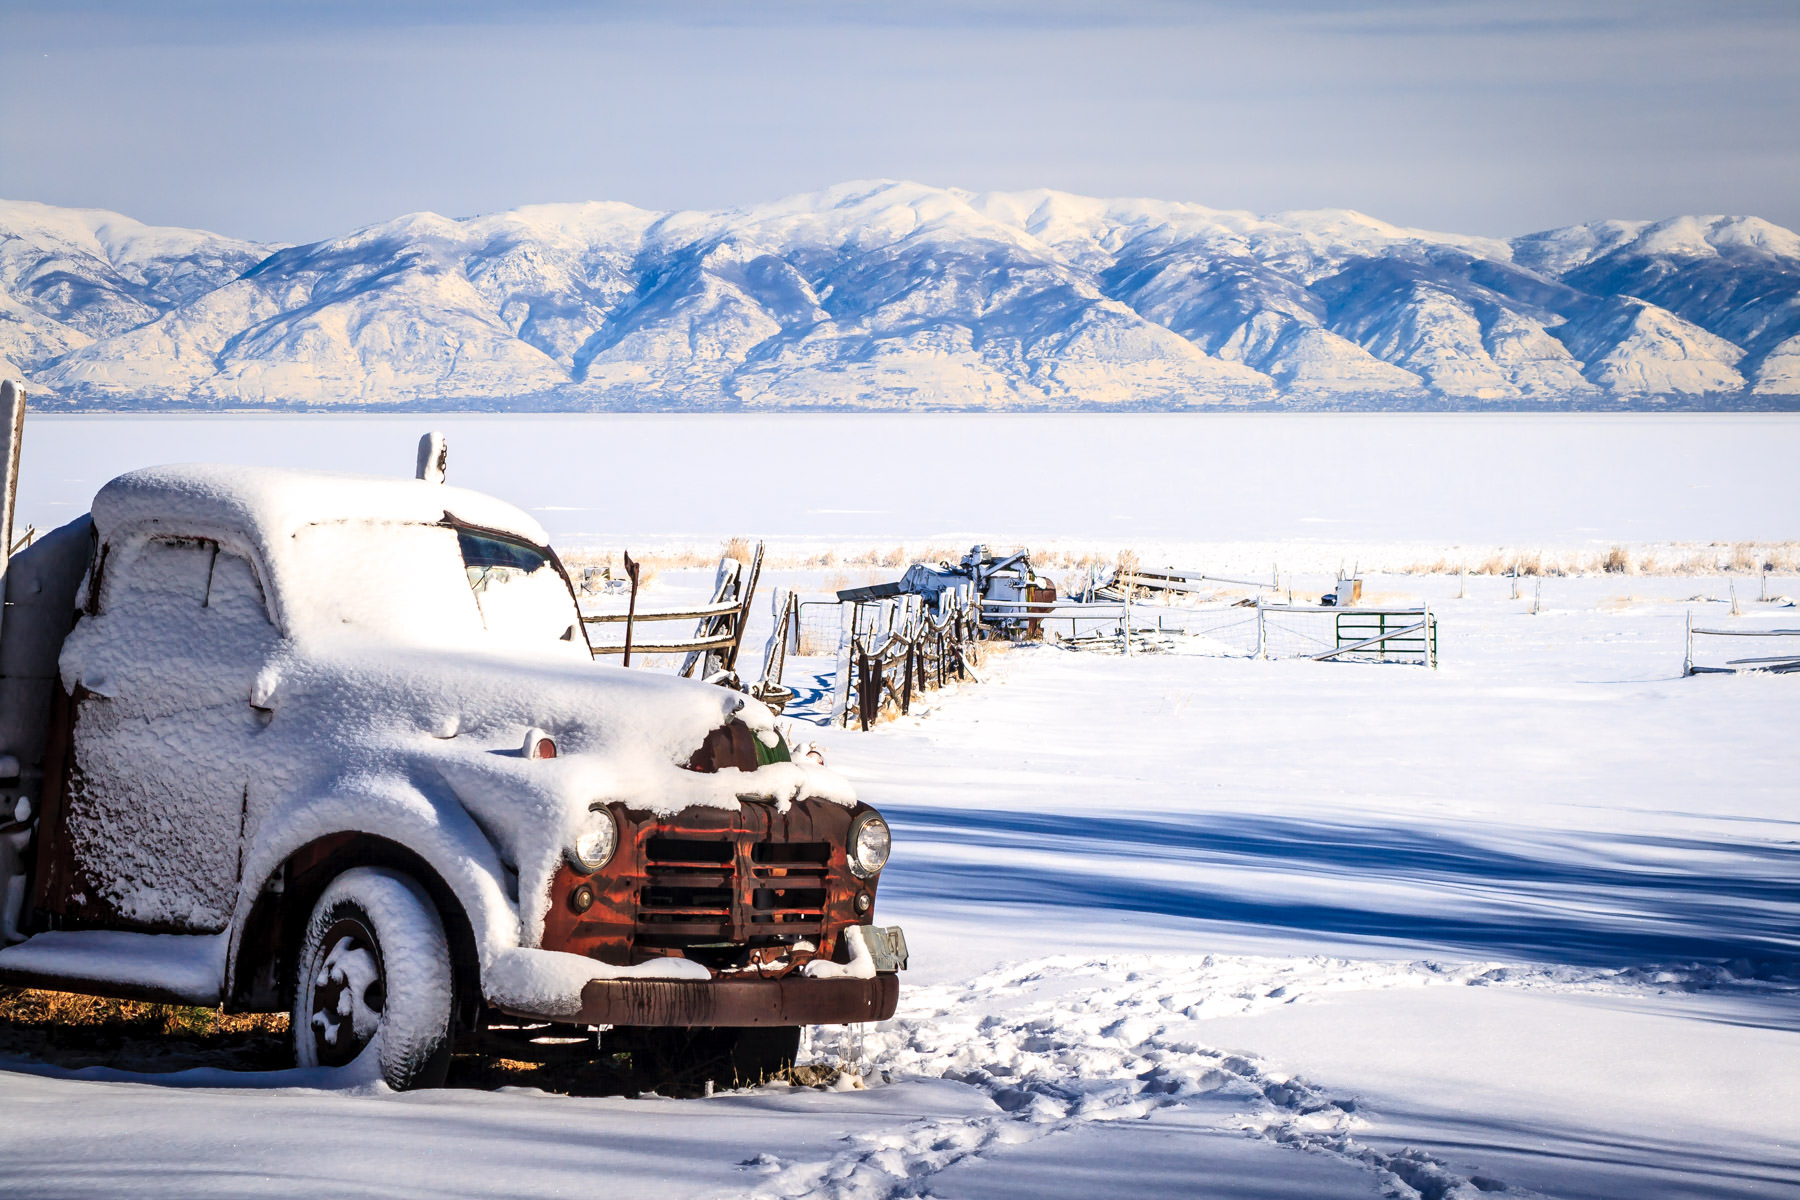 An abandoned, snow-covered truck on Antelope Island in the Great Salt Lake, Utah.